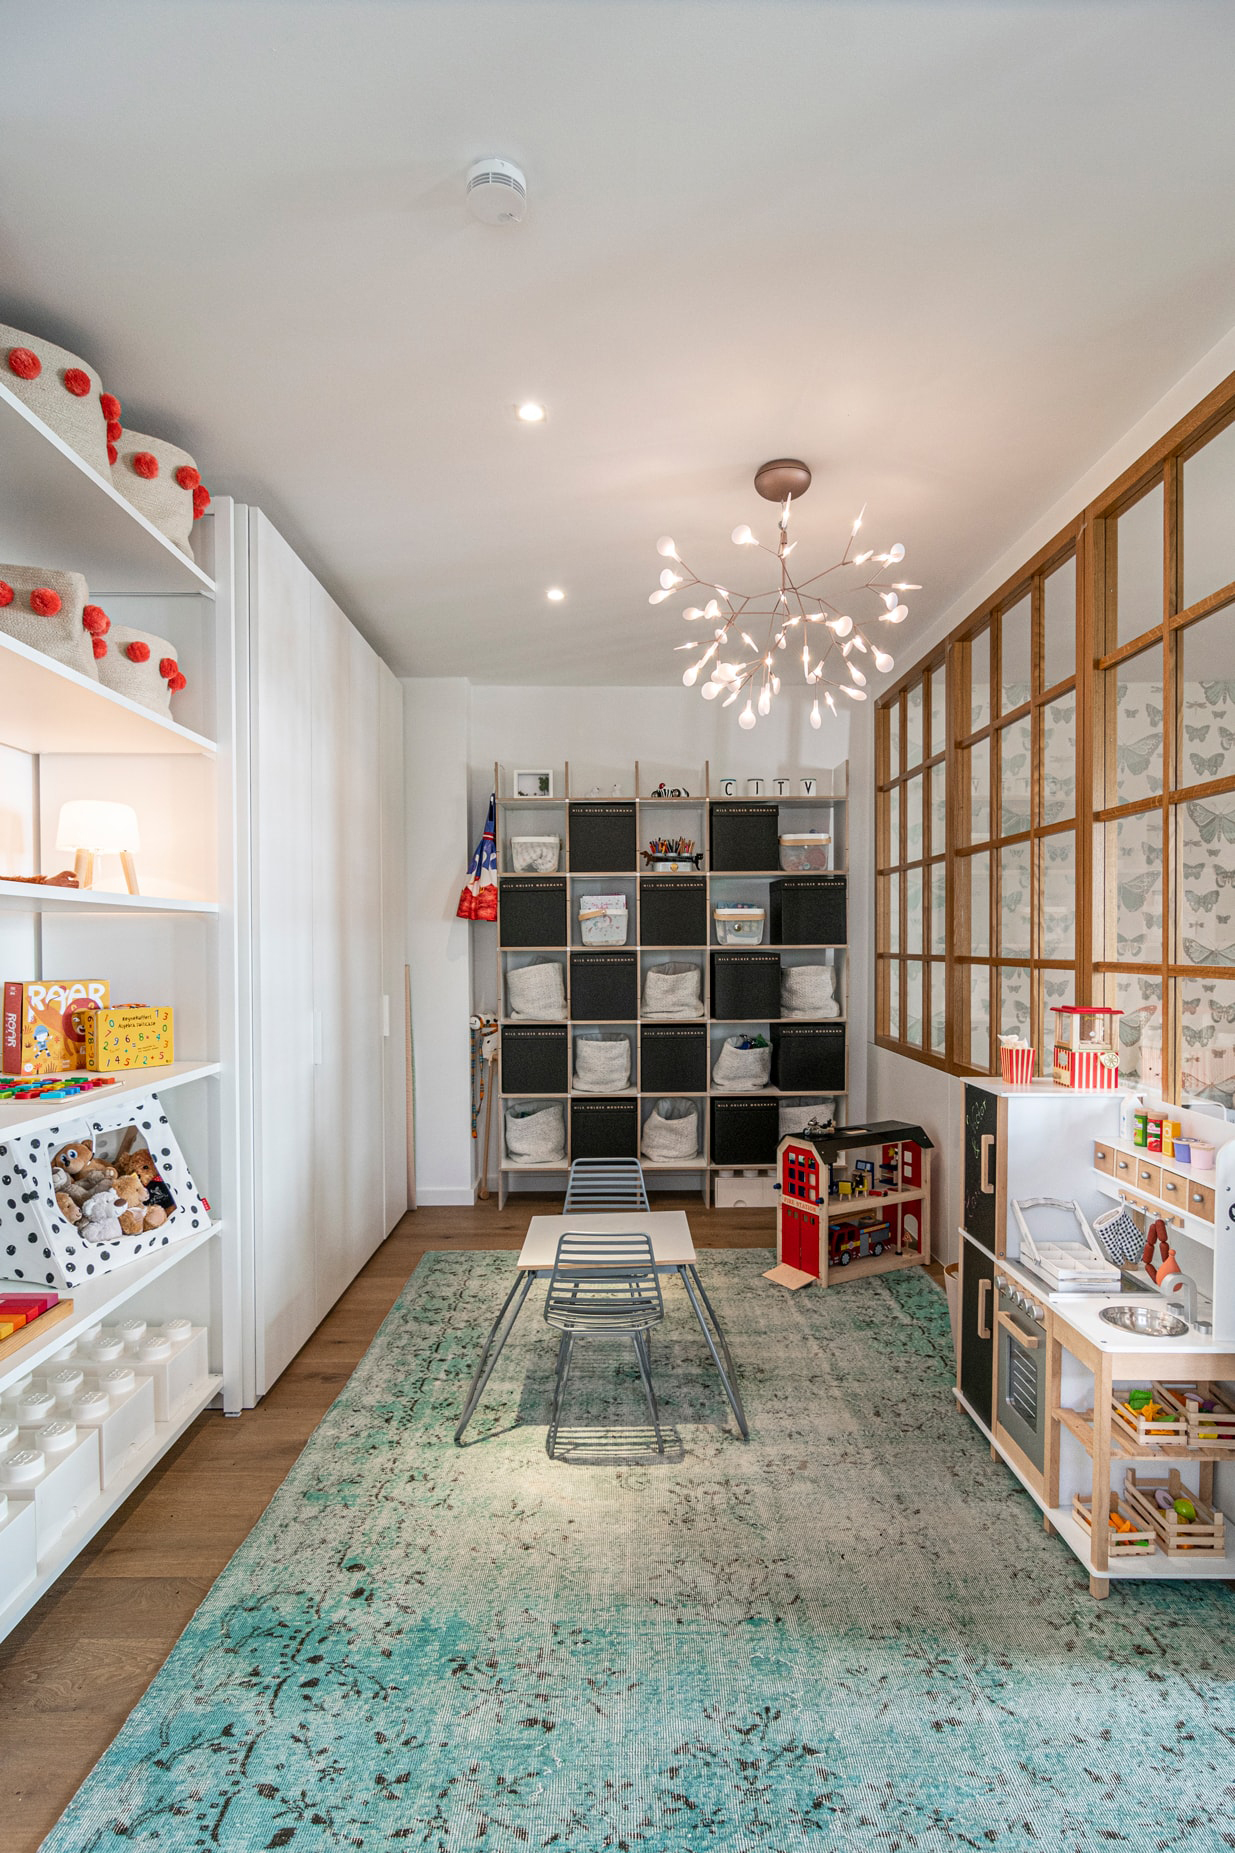 Find The Most Beautiful Character Of Neue Werkstaetten Concept & Store! neue werkstaetten Find The Most Beautiful Character Of Neue Werkstaetten Concept & Store! 12 6